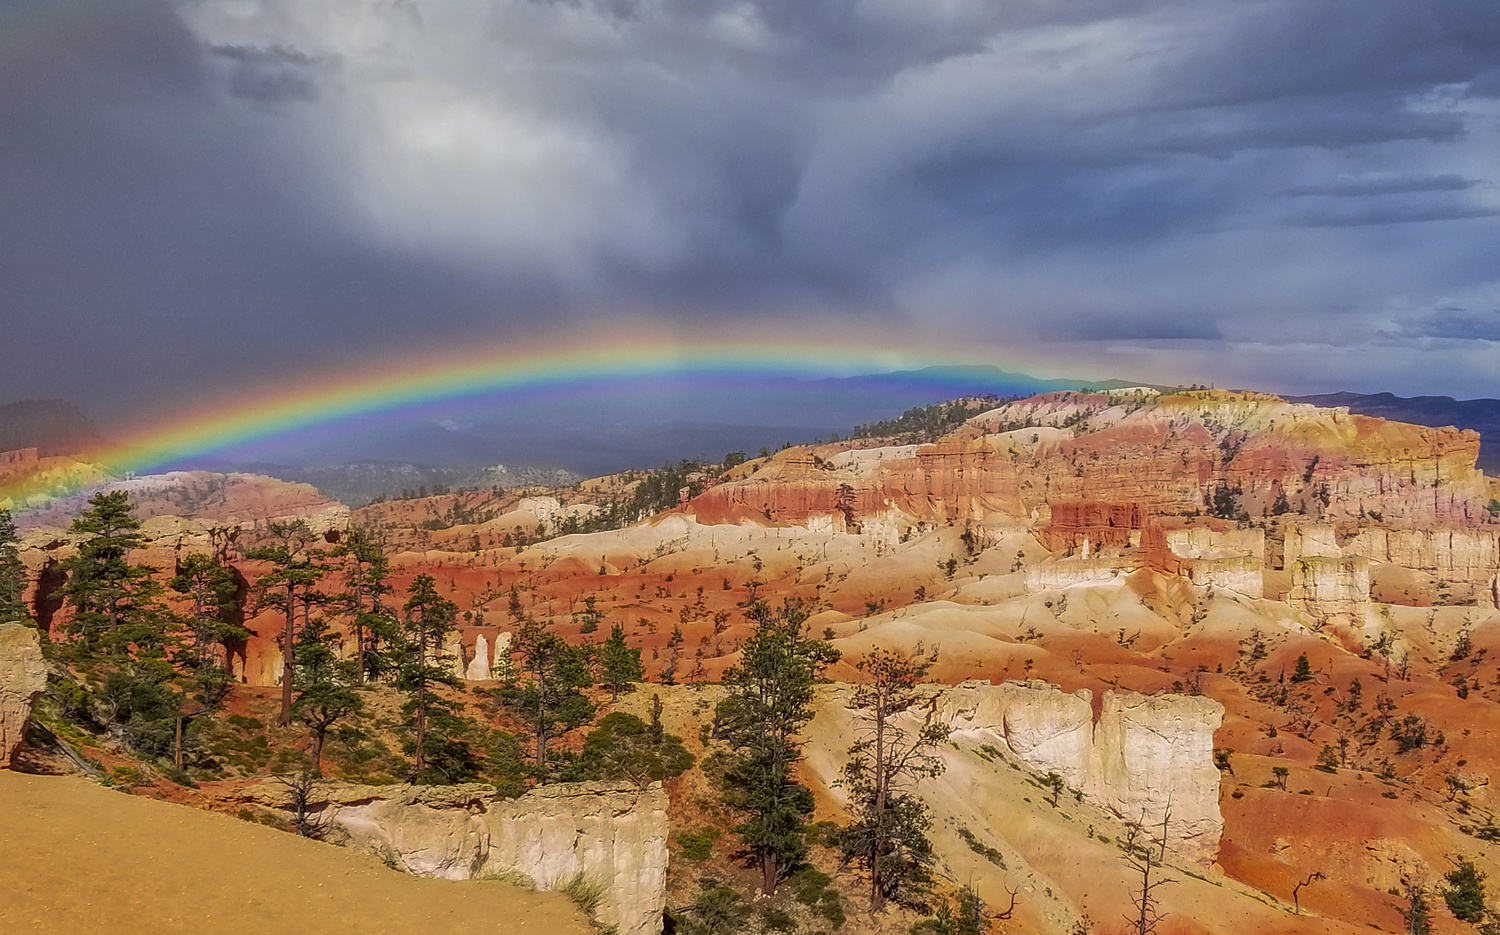 Untitled Rainbow after hail storm in Bryce by John Nicholson